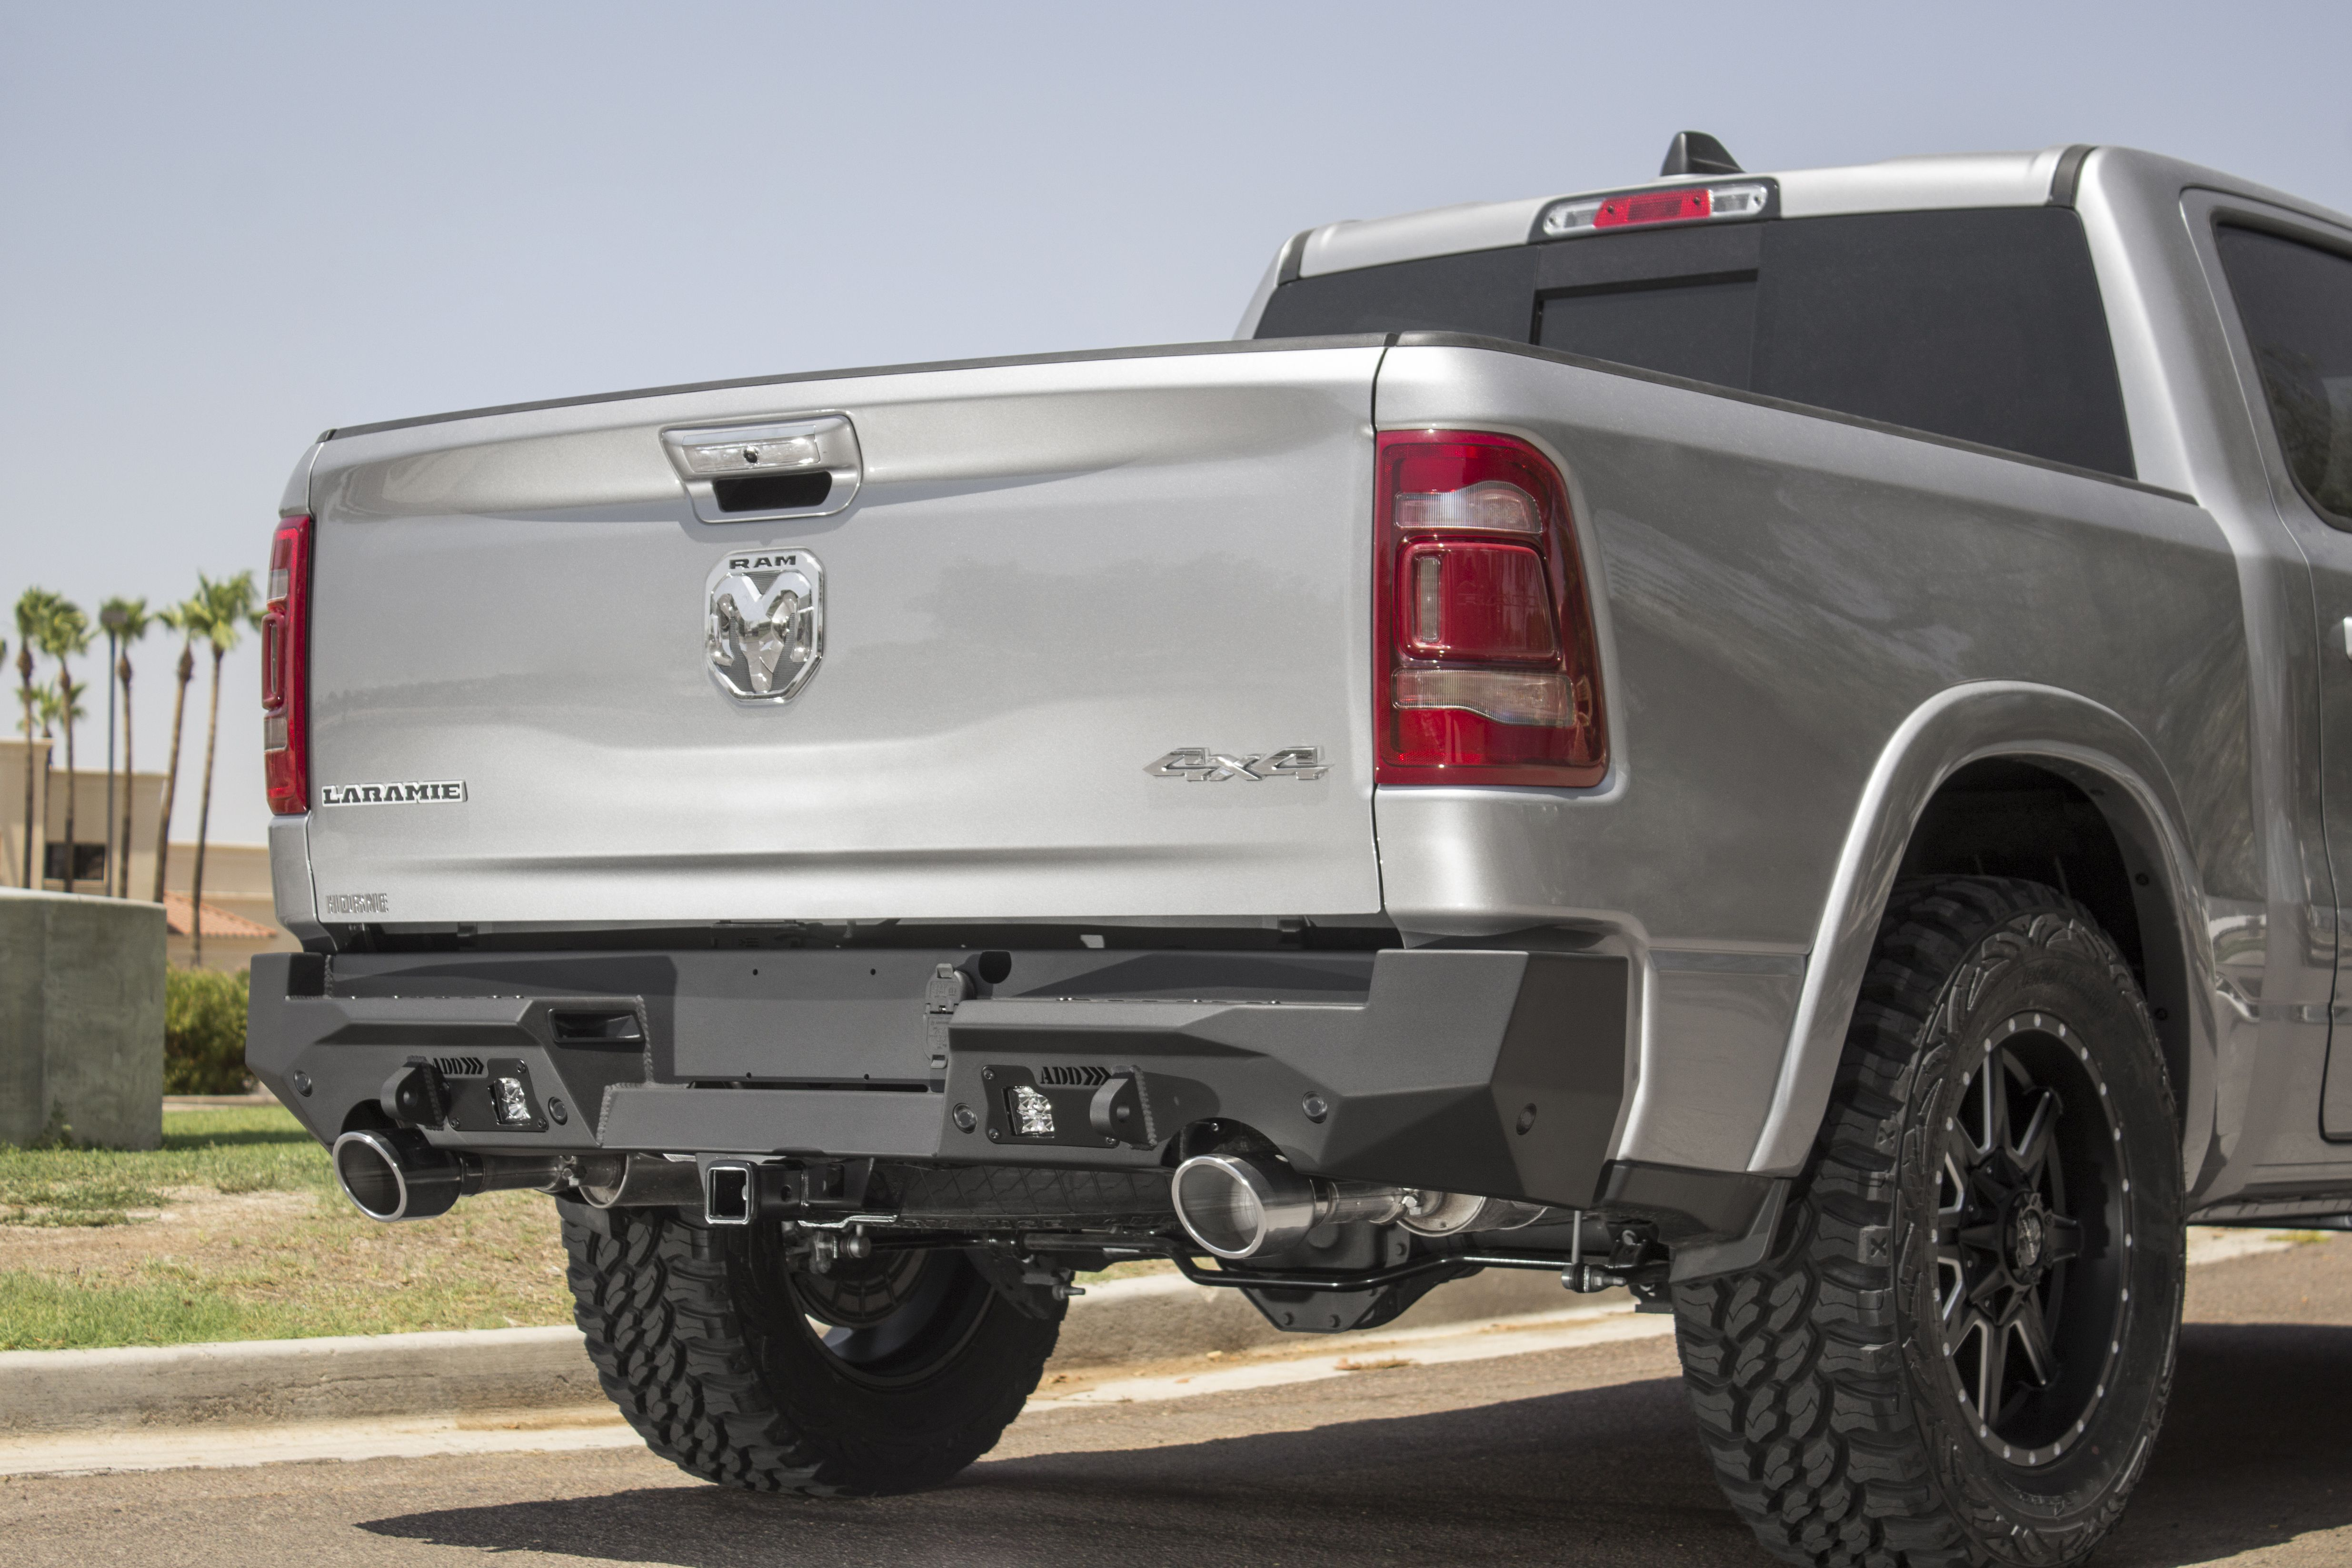 2019 Current Ram 1500 Stealth Fighter Rear Bumper Sleek Design Fits Tight To The Rear Of The Truck Styling Compliments Factor Truck Bumpers Ram 1500 Bumpers